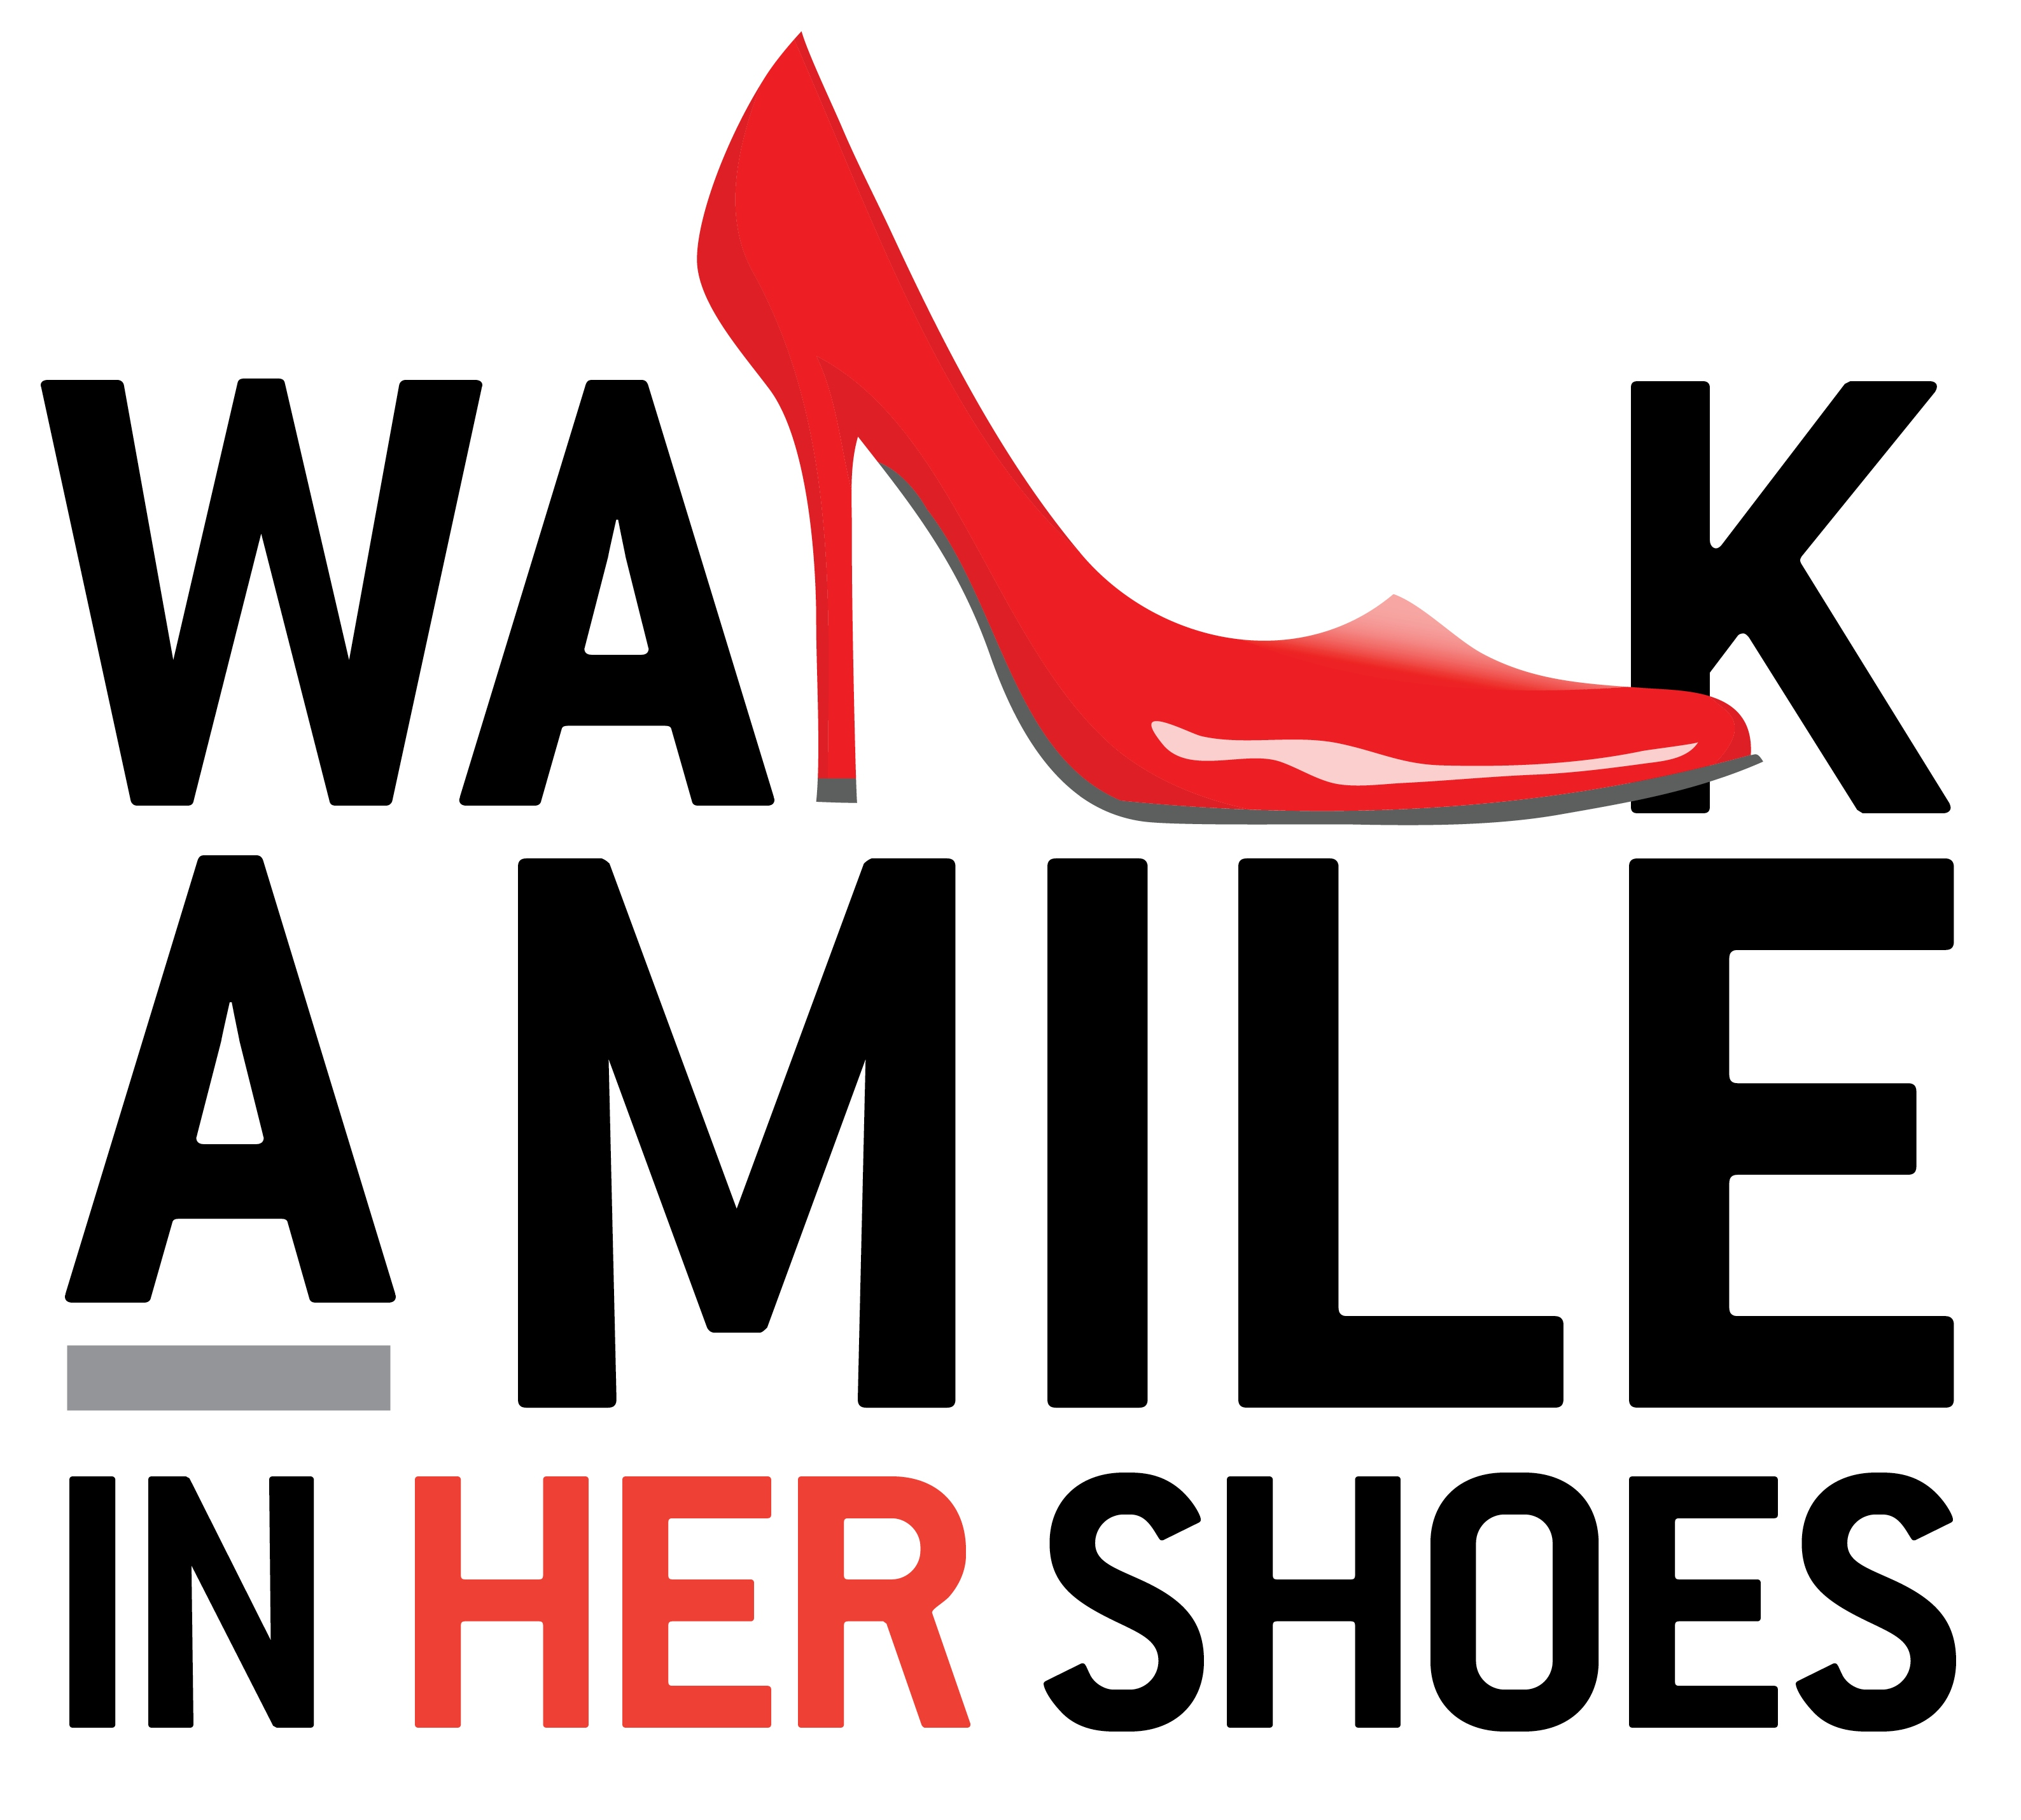 walk a mile in her shoes logo